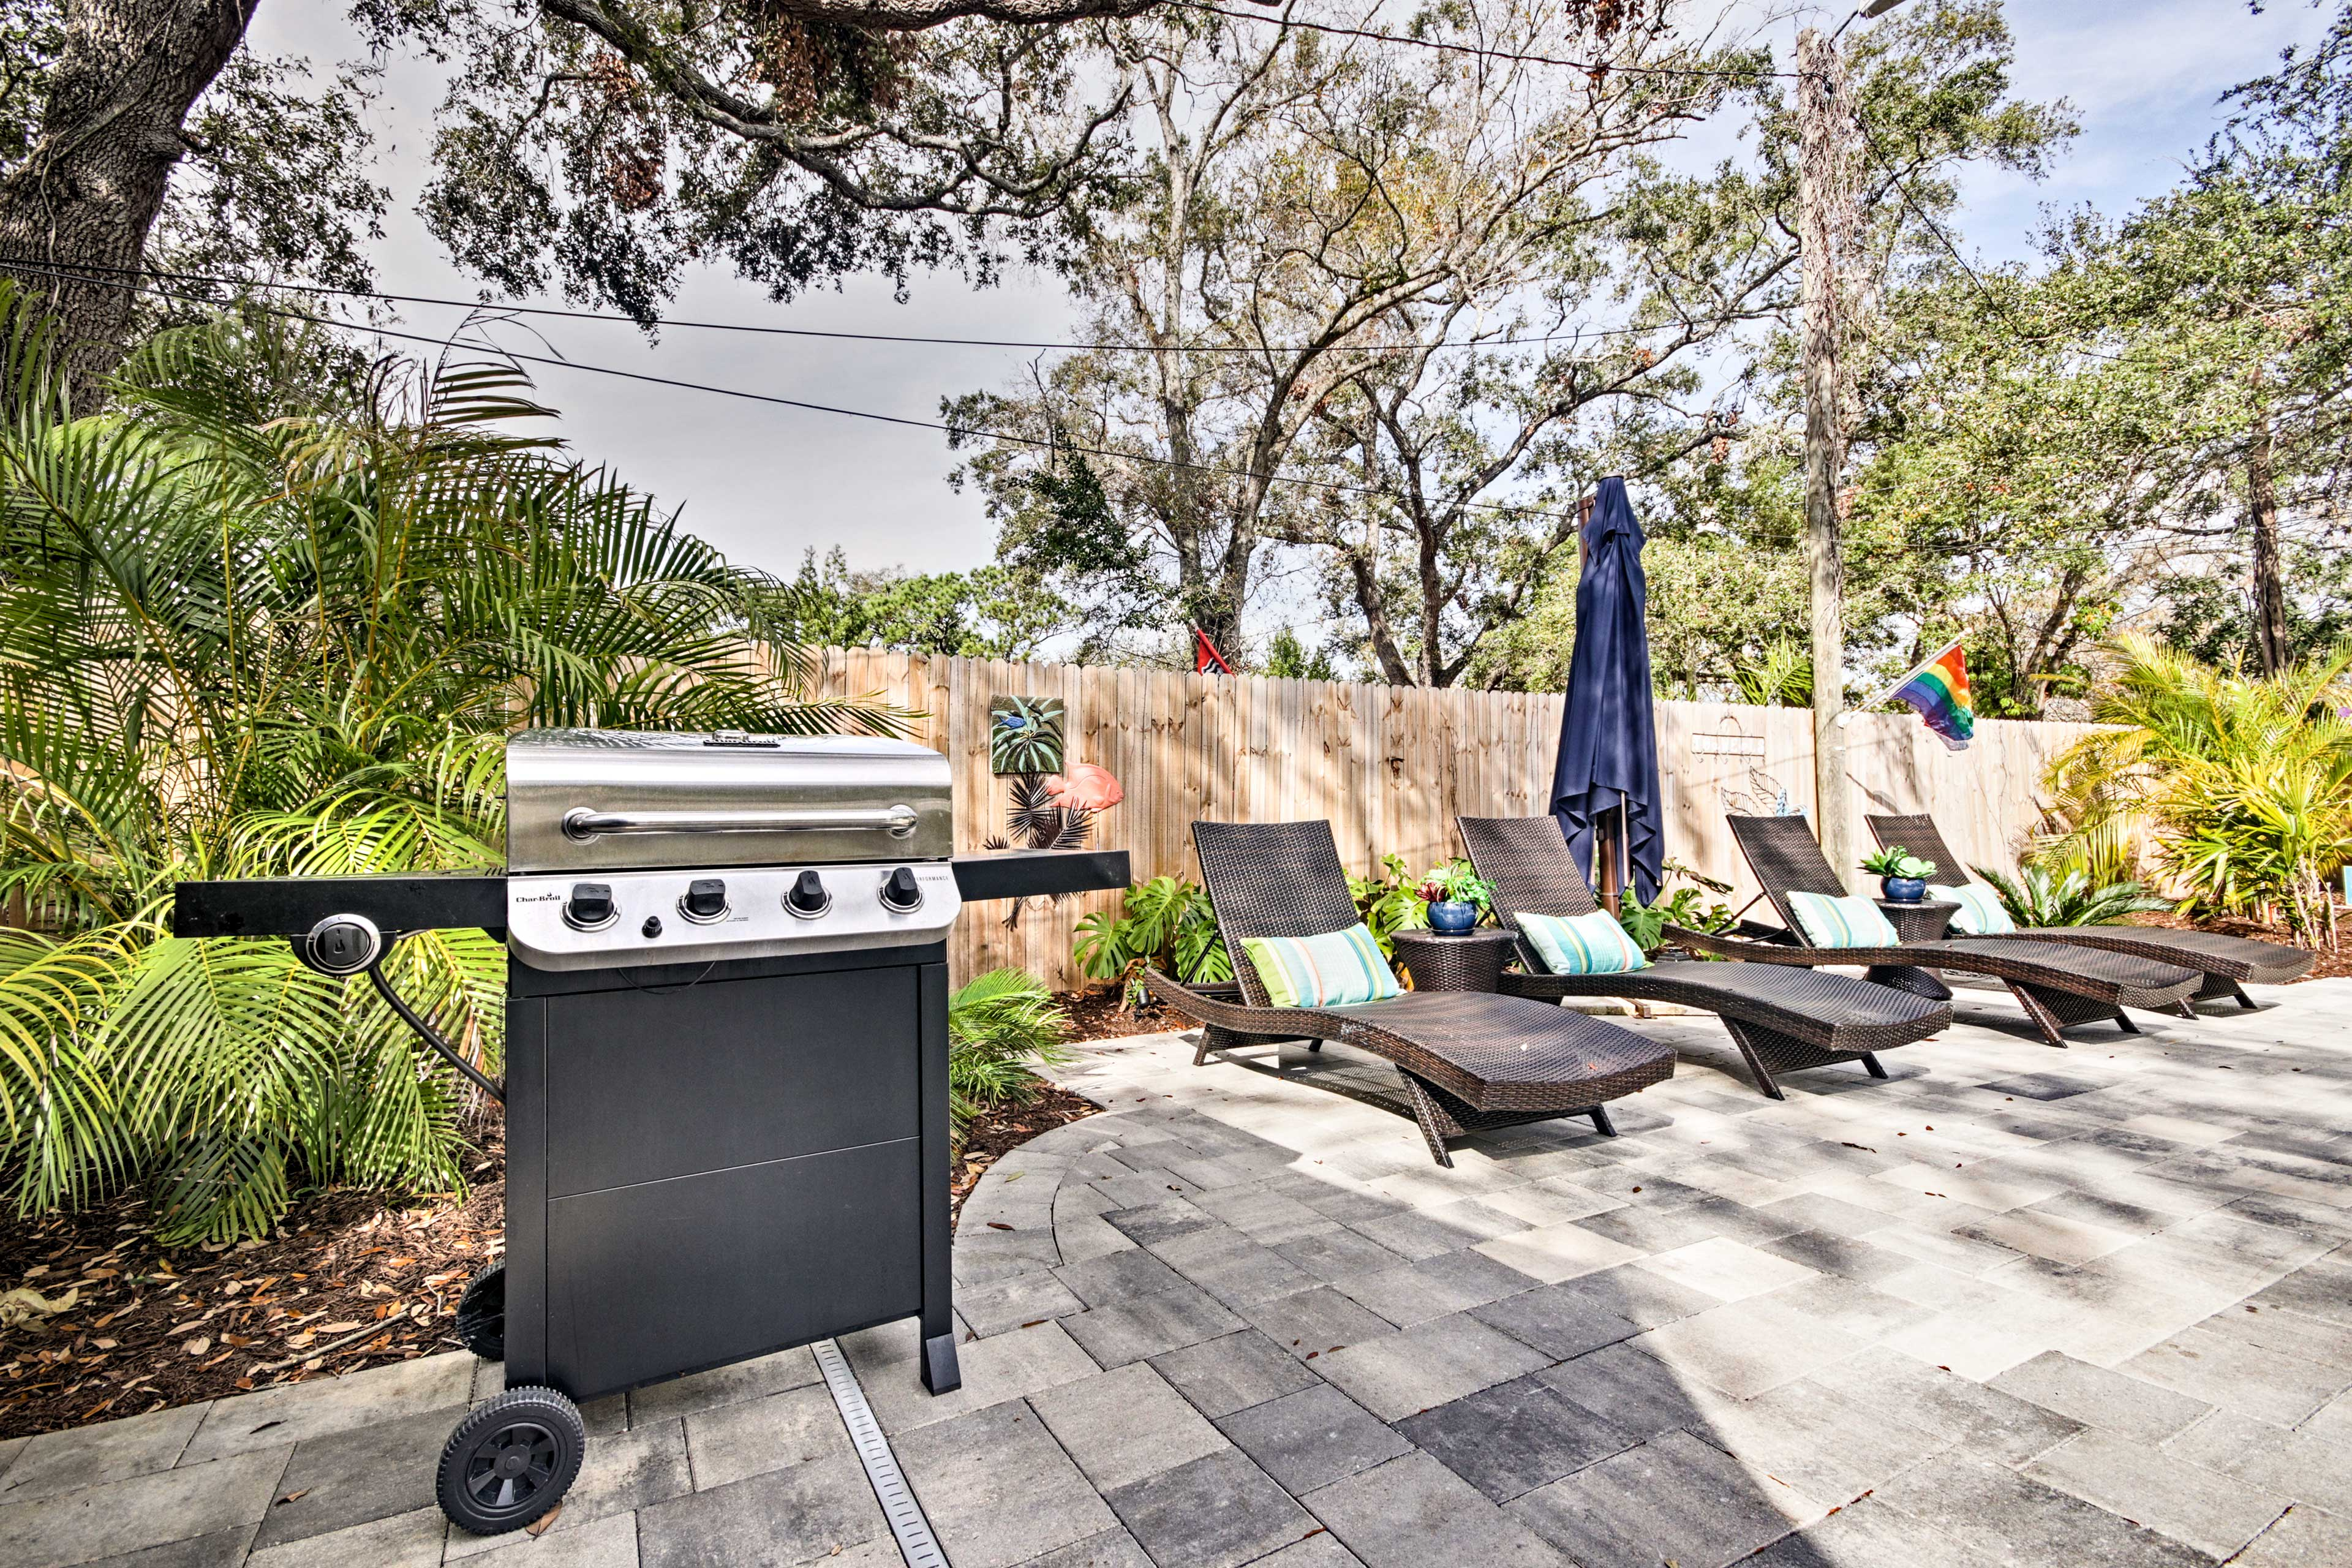 Cook up a feast on the gas grill.